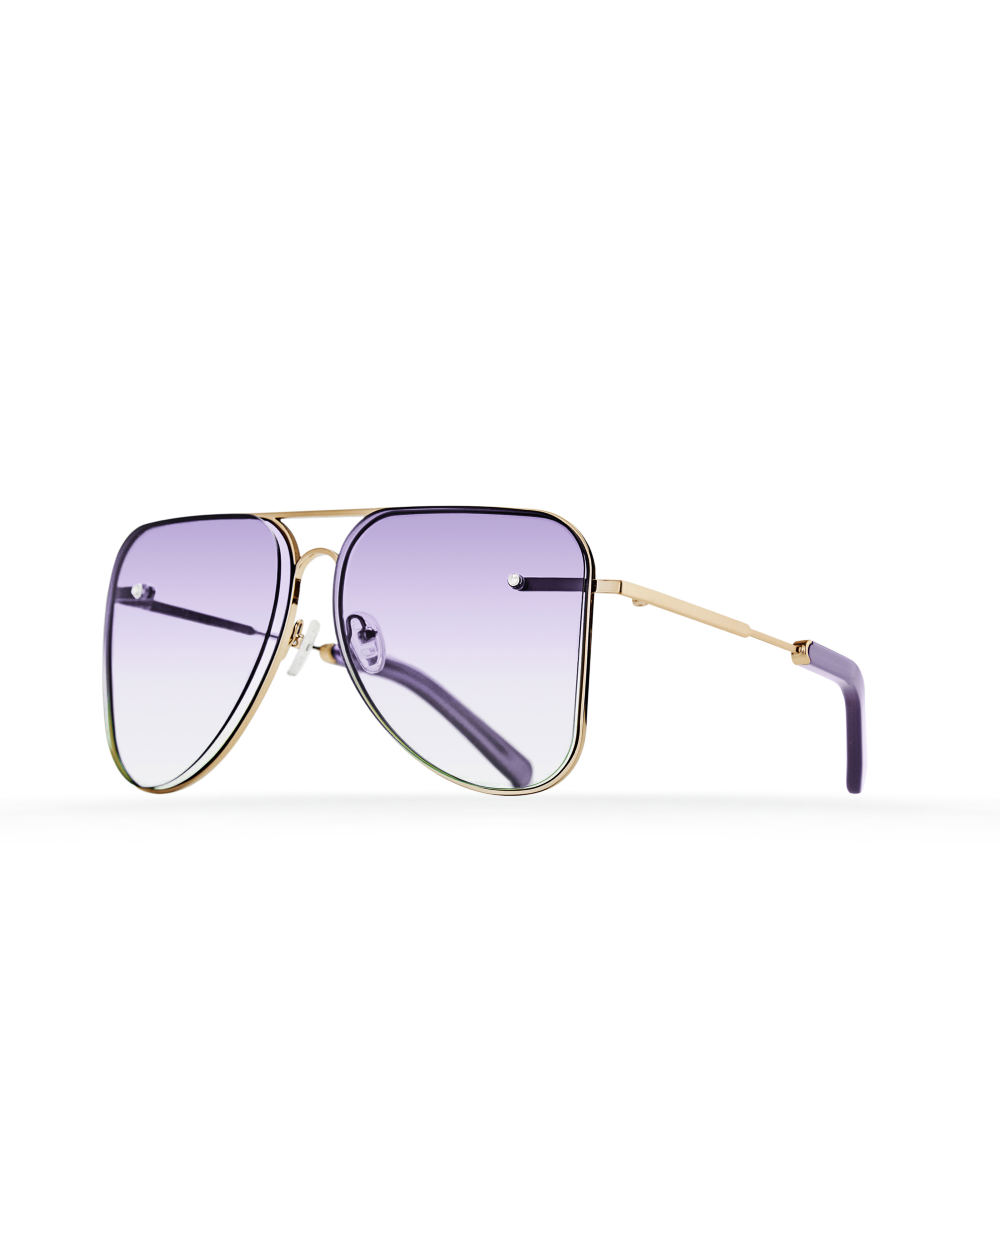 Lilac gradient aviator Model 1. Golden metal frame